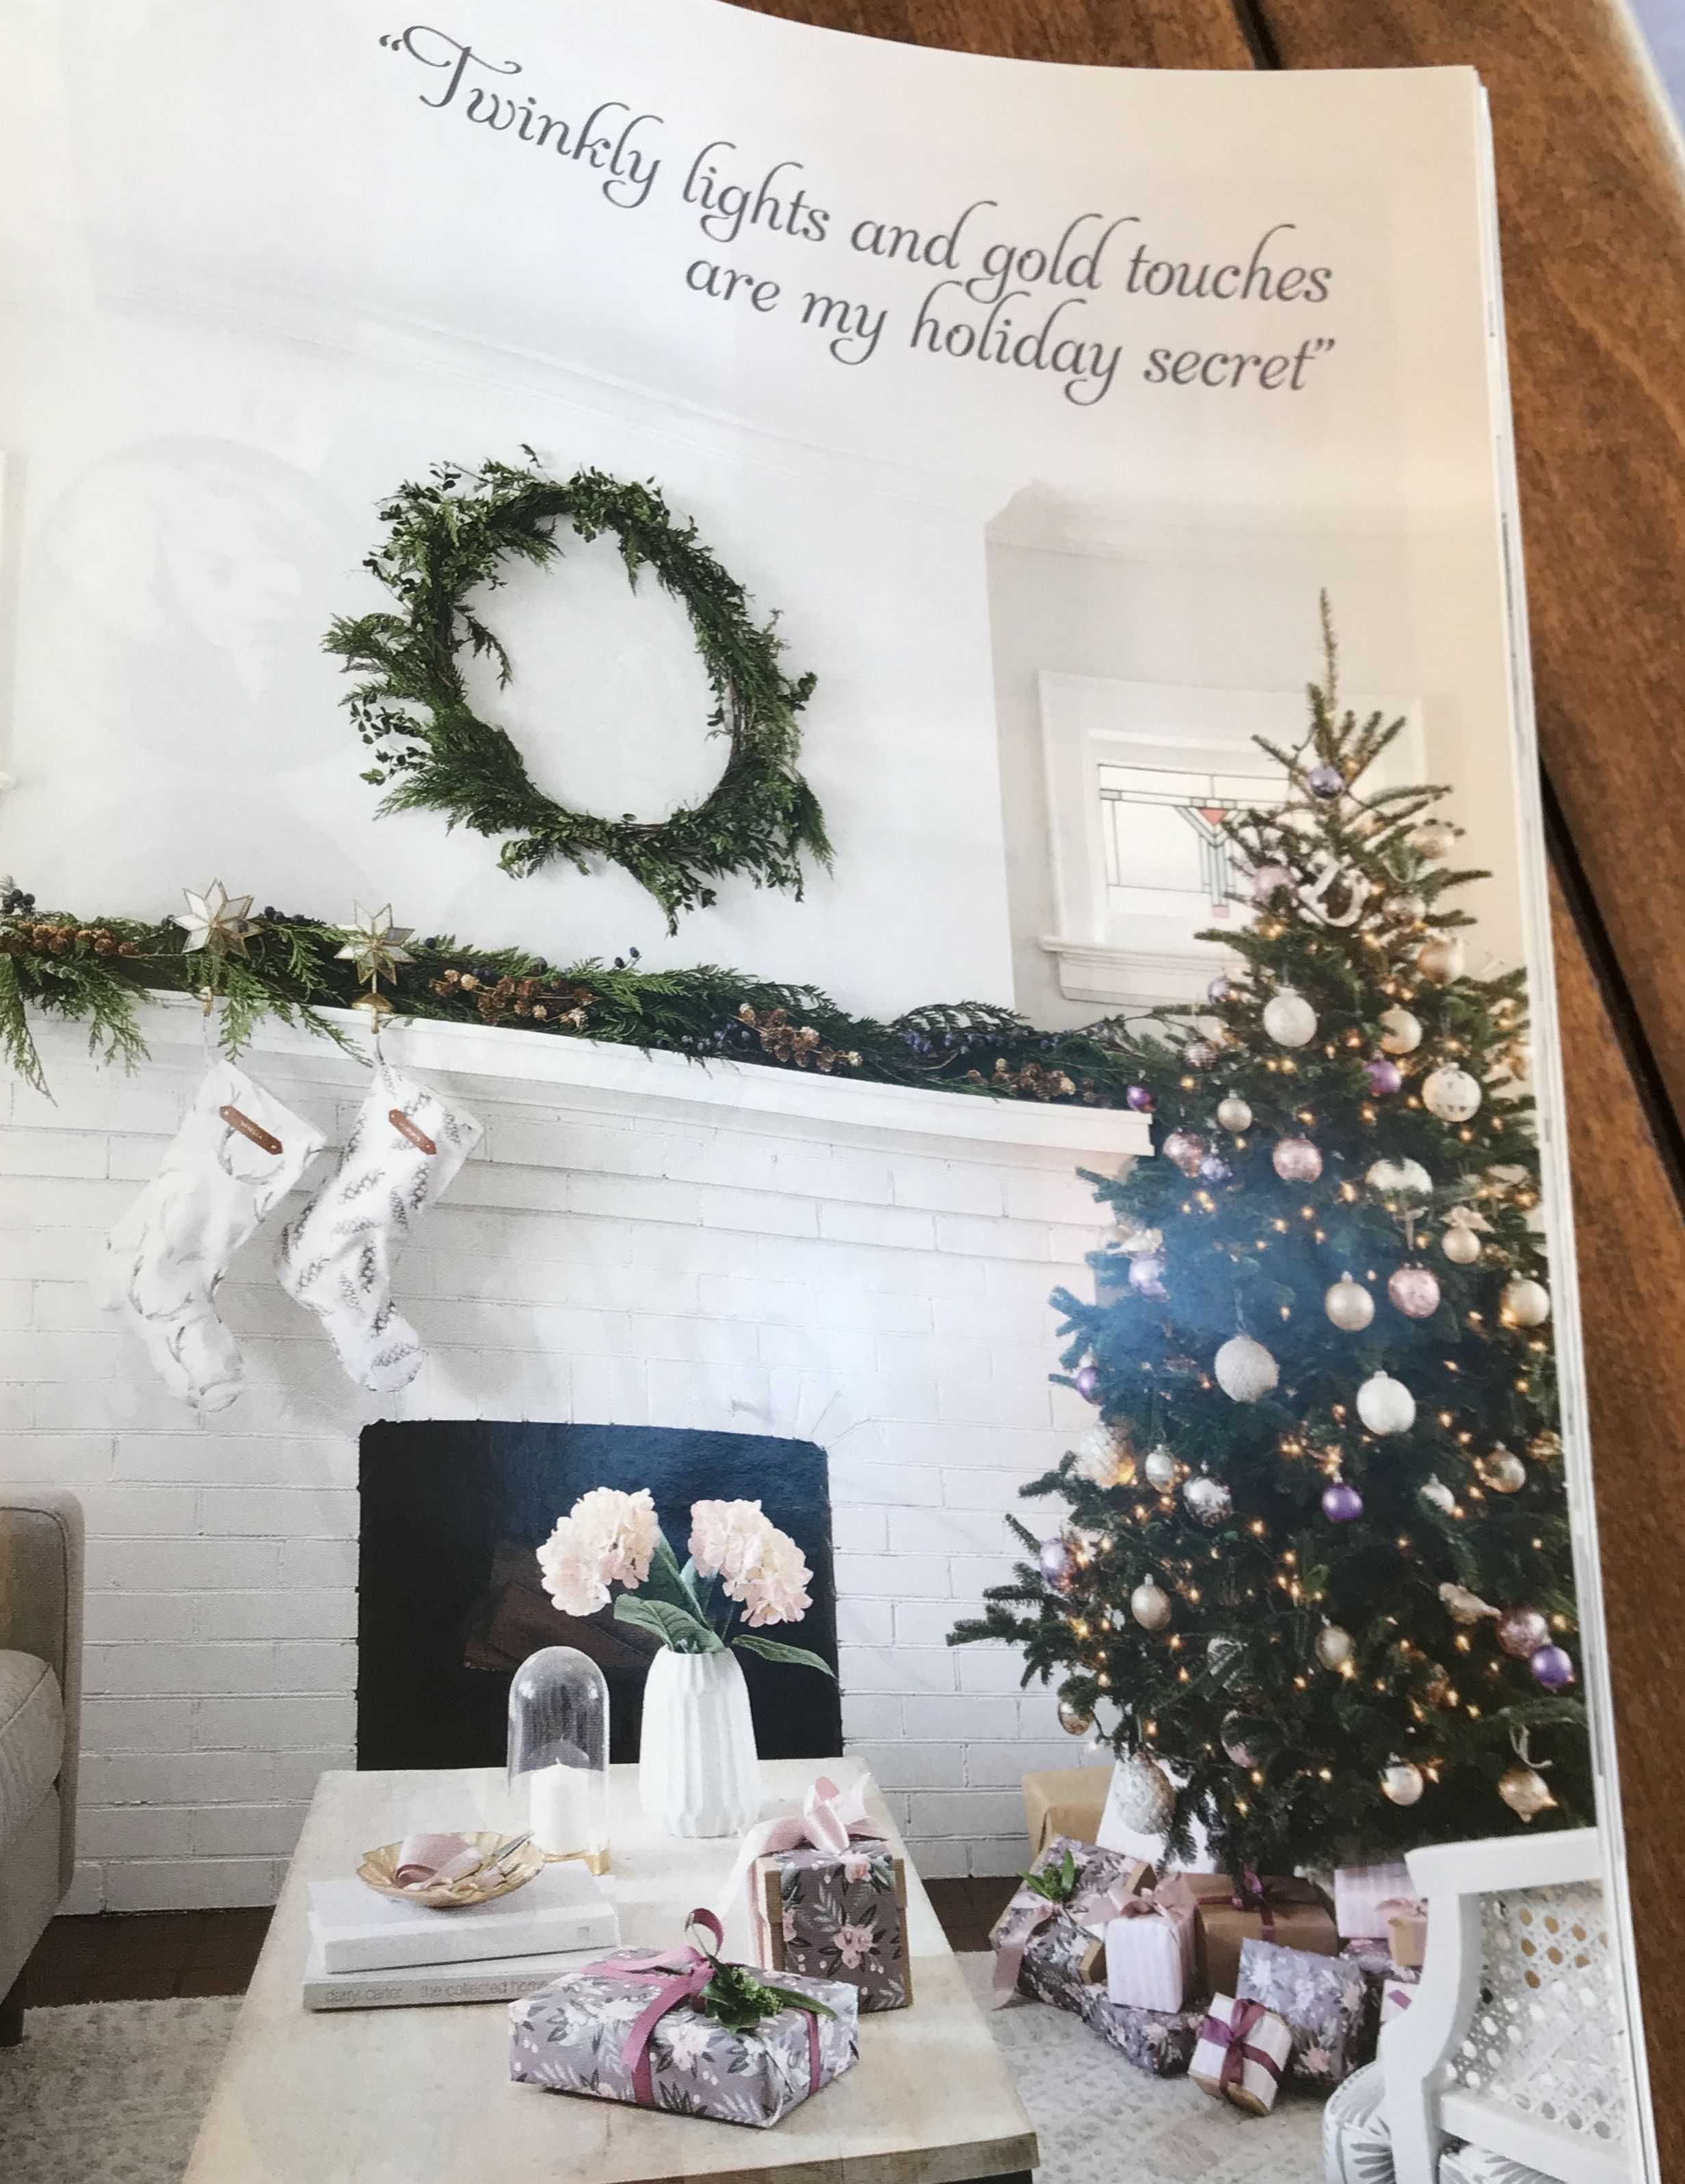 Pin by Jackie Culpepper on Christmas Rush (With images